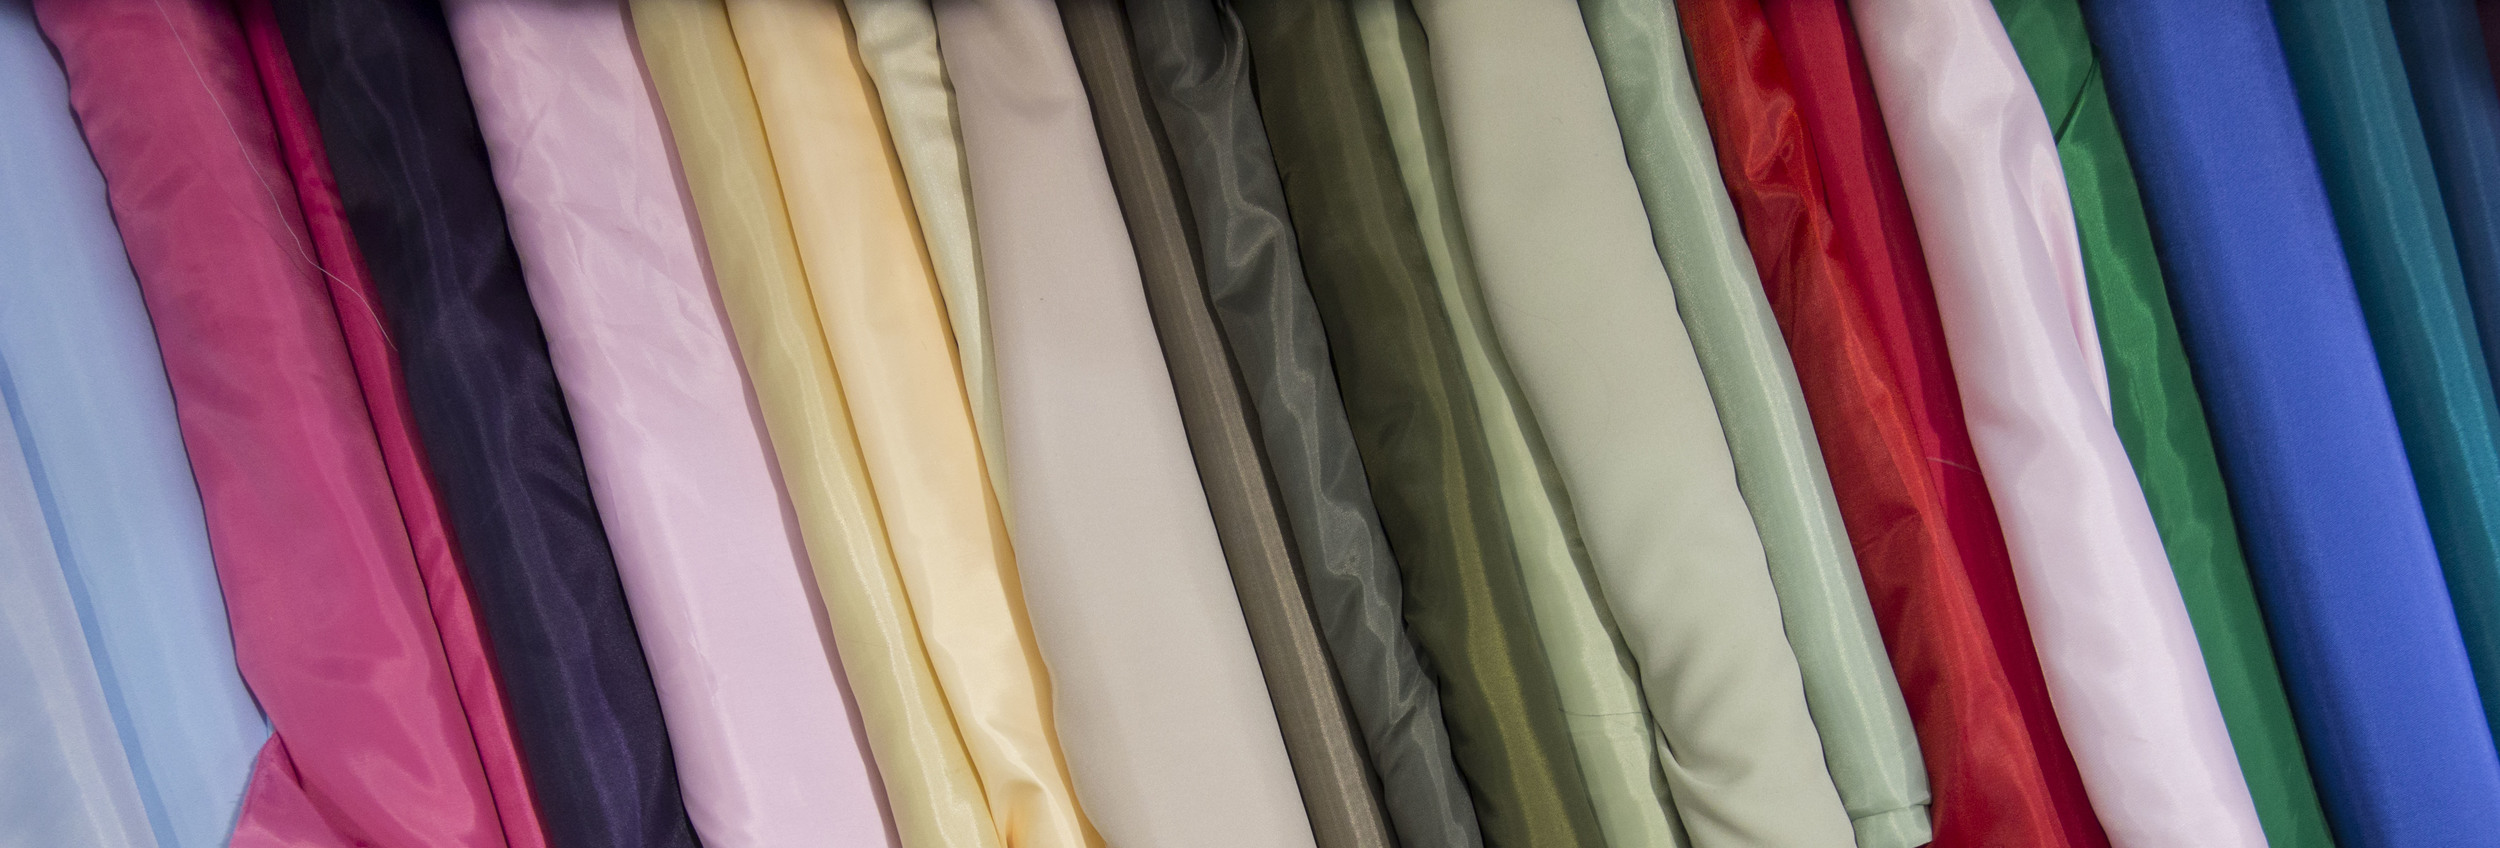 Textile Fabrics Market By Manufacturers,Types,Regions And Applications Research Report Forecast To 2025